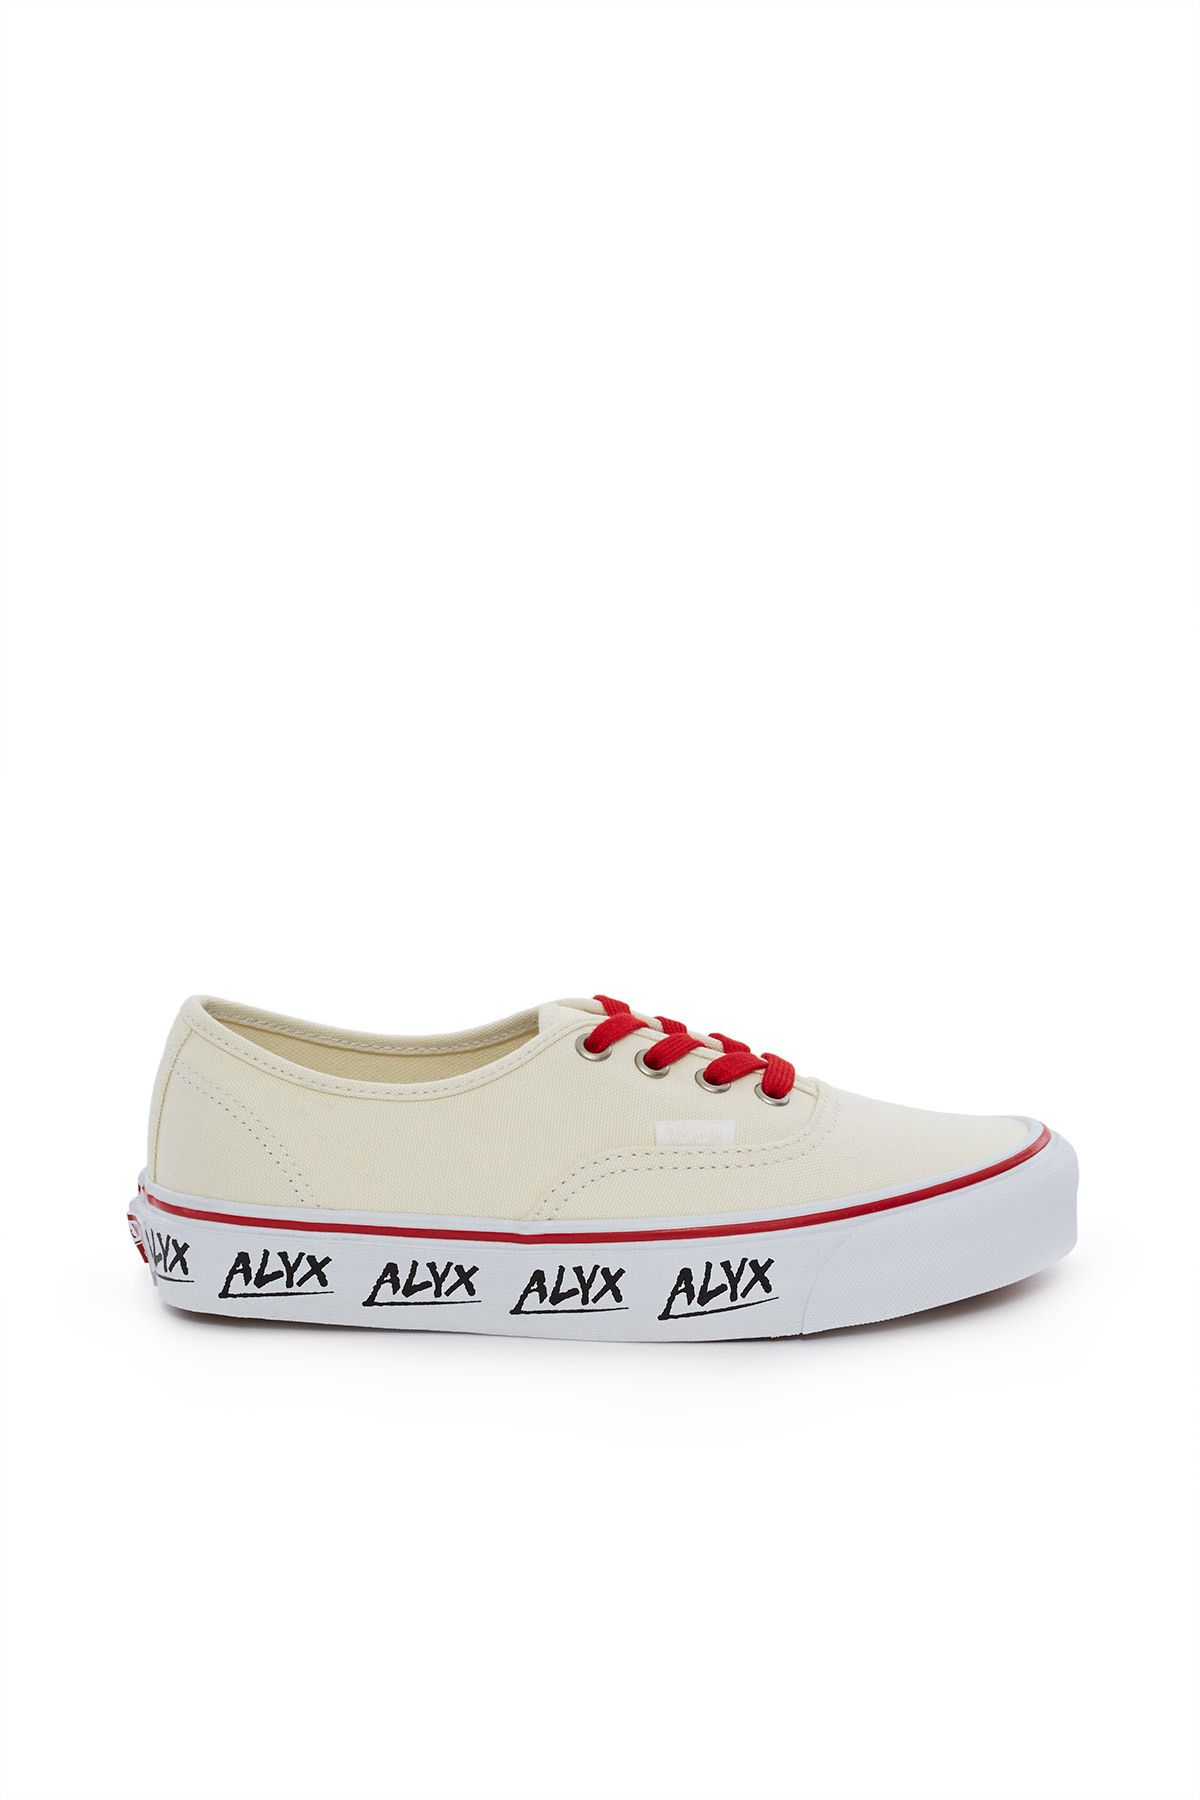 Vault by Vans x ALYX, ALYX OG Authentic LX Sneaker The OG Authentic LX  sneaker in cream features contrast red laces and ALYX's custom logo printed  along the ...